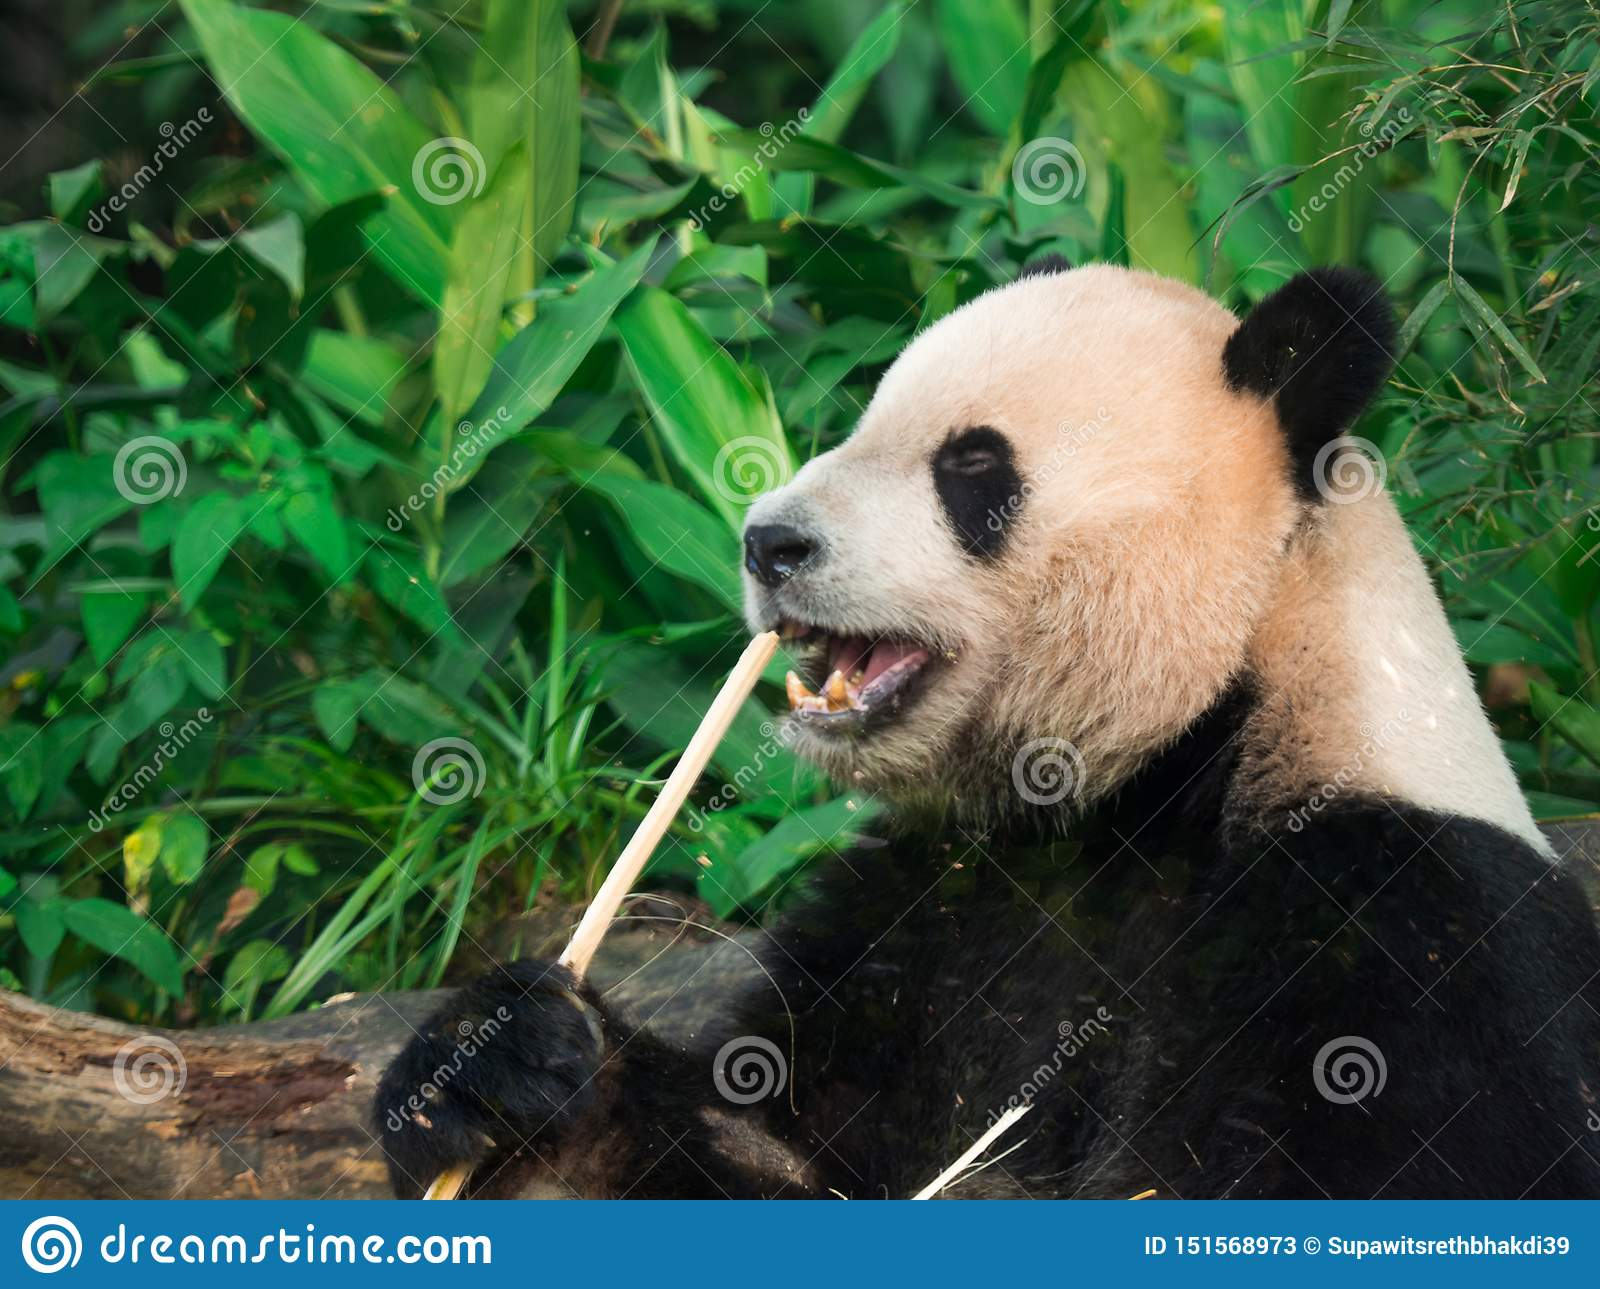 Adorable hungry Giant Panda (Ailuropoda melanoleuca) eating bamboo shoots.